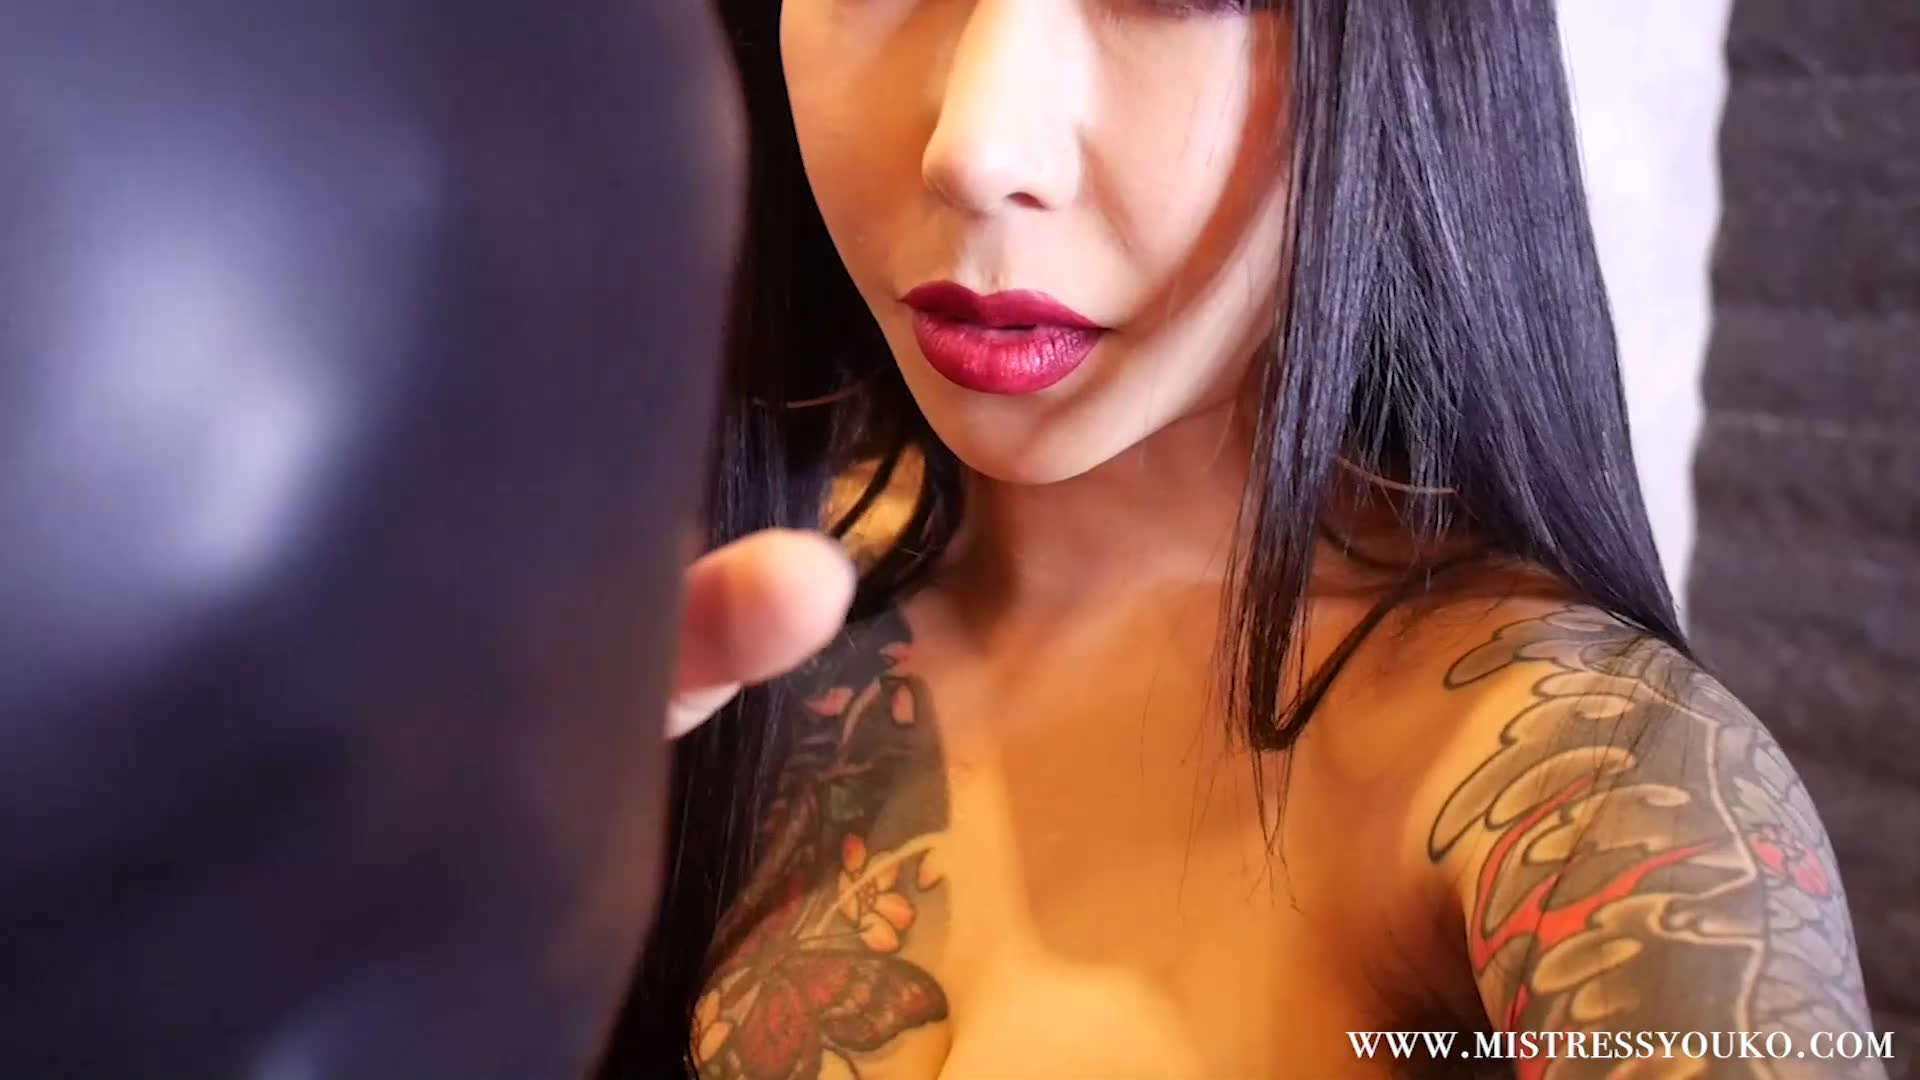 Japanese domineering tattoo demon lake queen plays with weak male slave, whipped breasts, sputum and face